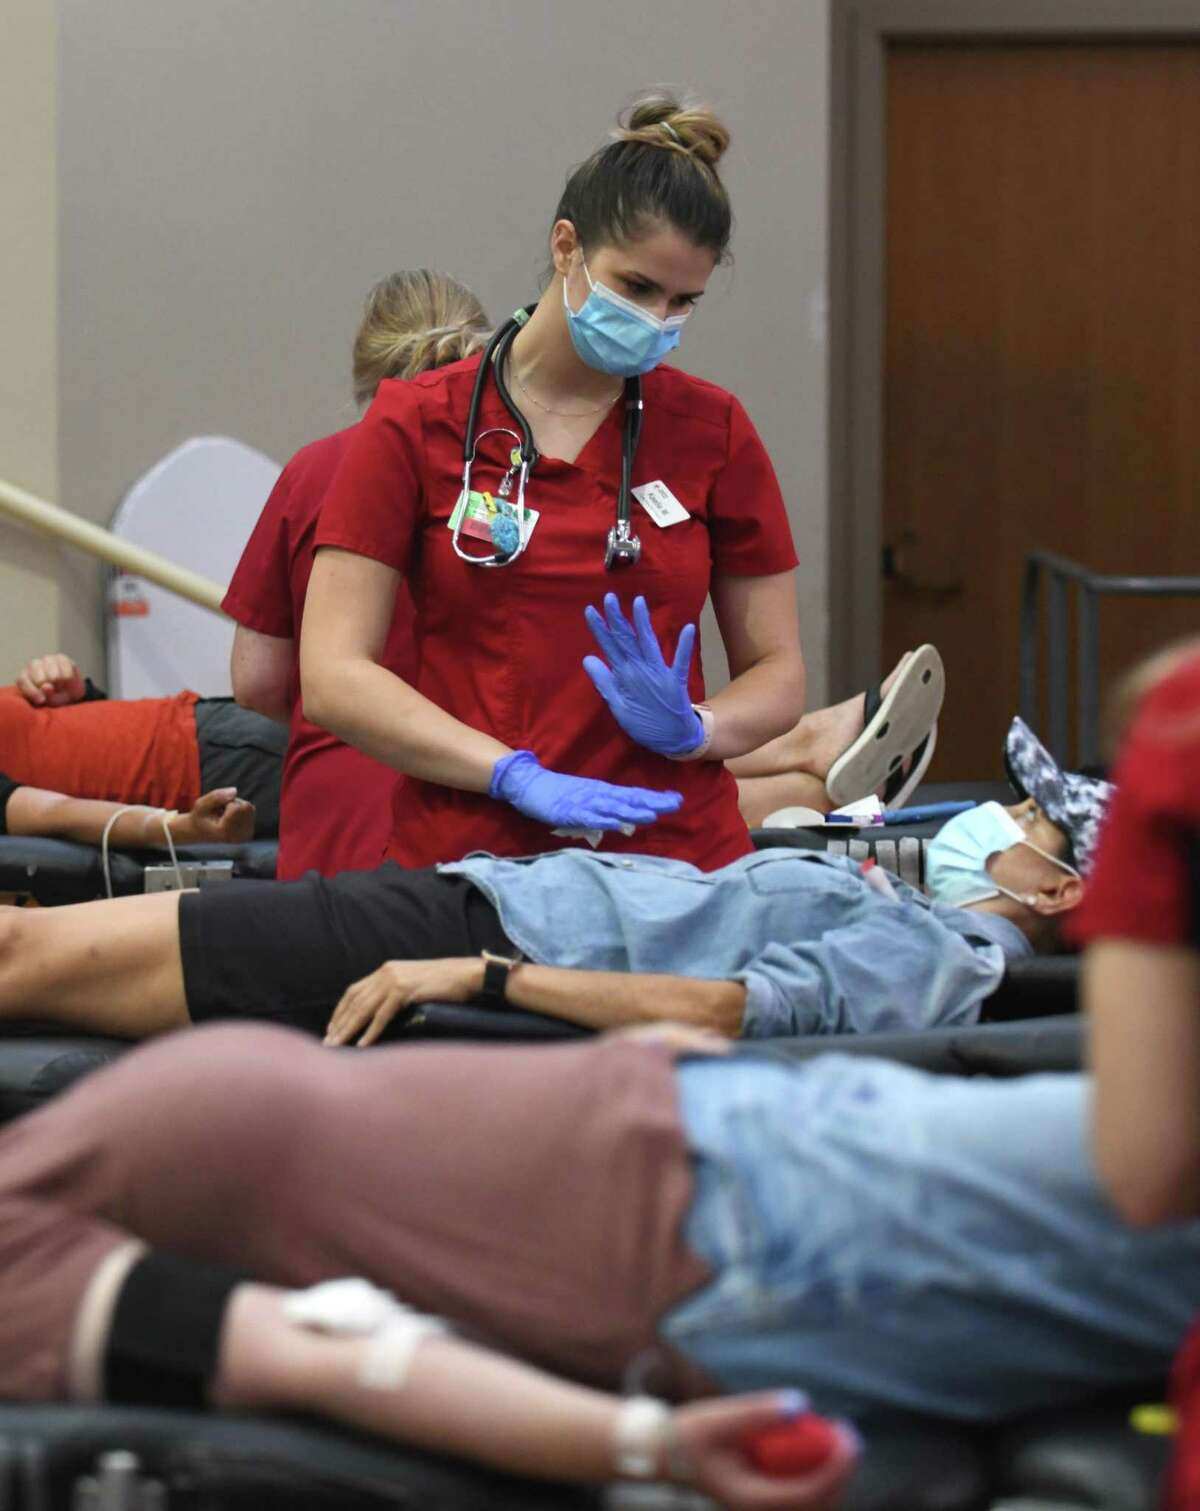 Collections technician Kaelie Murray-Simmons assists a donor during the American Red Cross blood drive at Temple Sholom in Greenwich, Conn. Monday, Aug. 2, 2021.